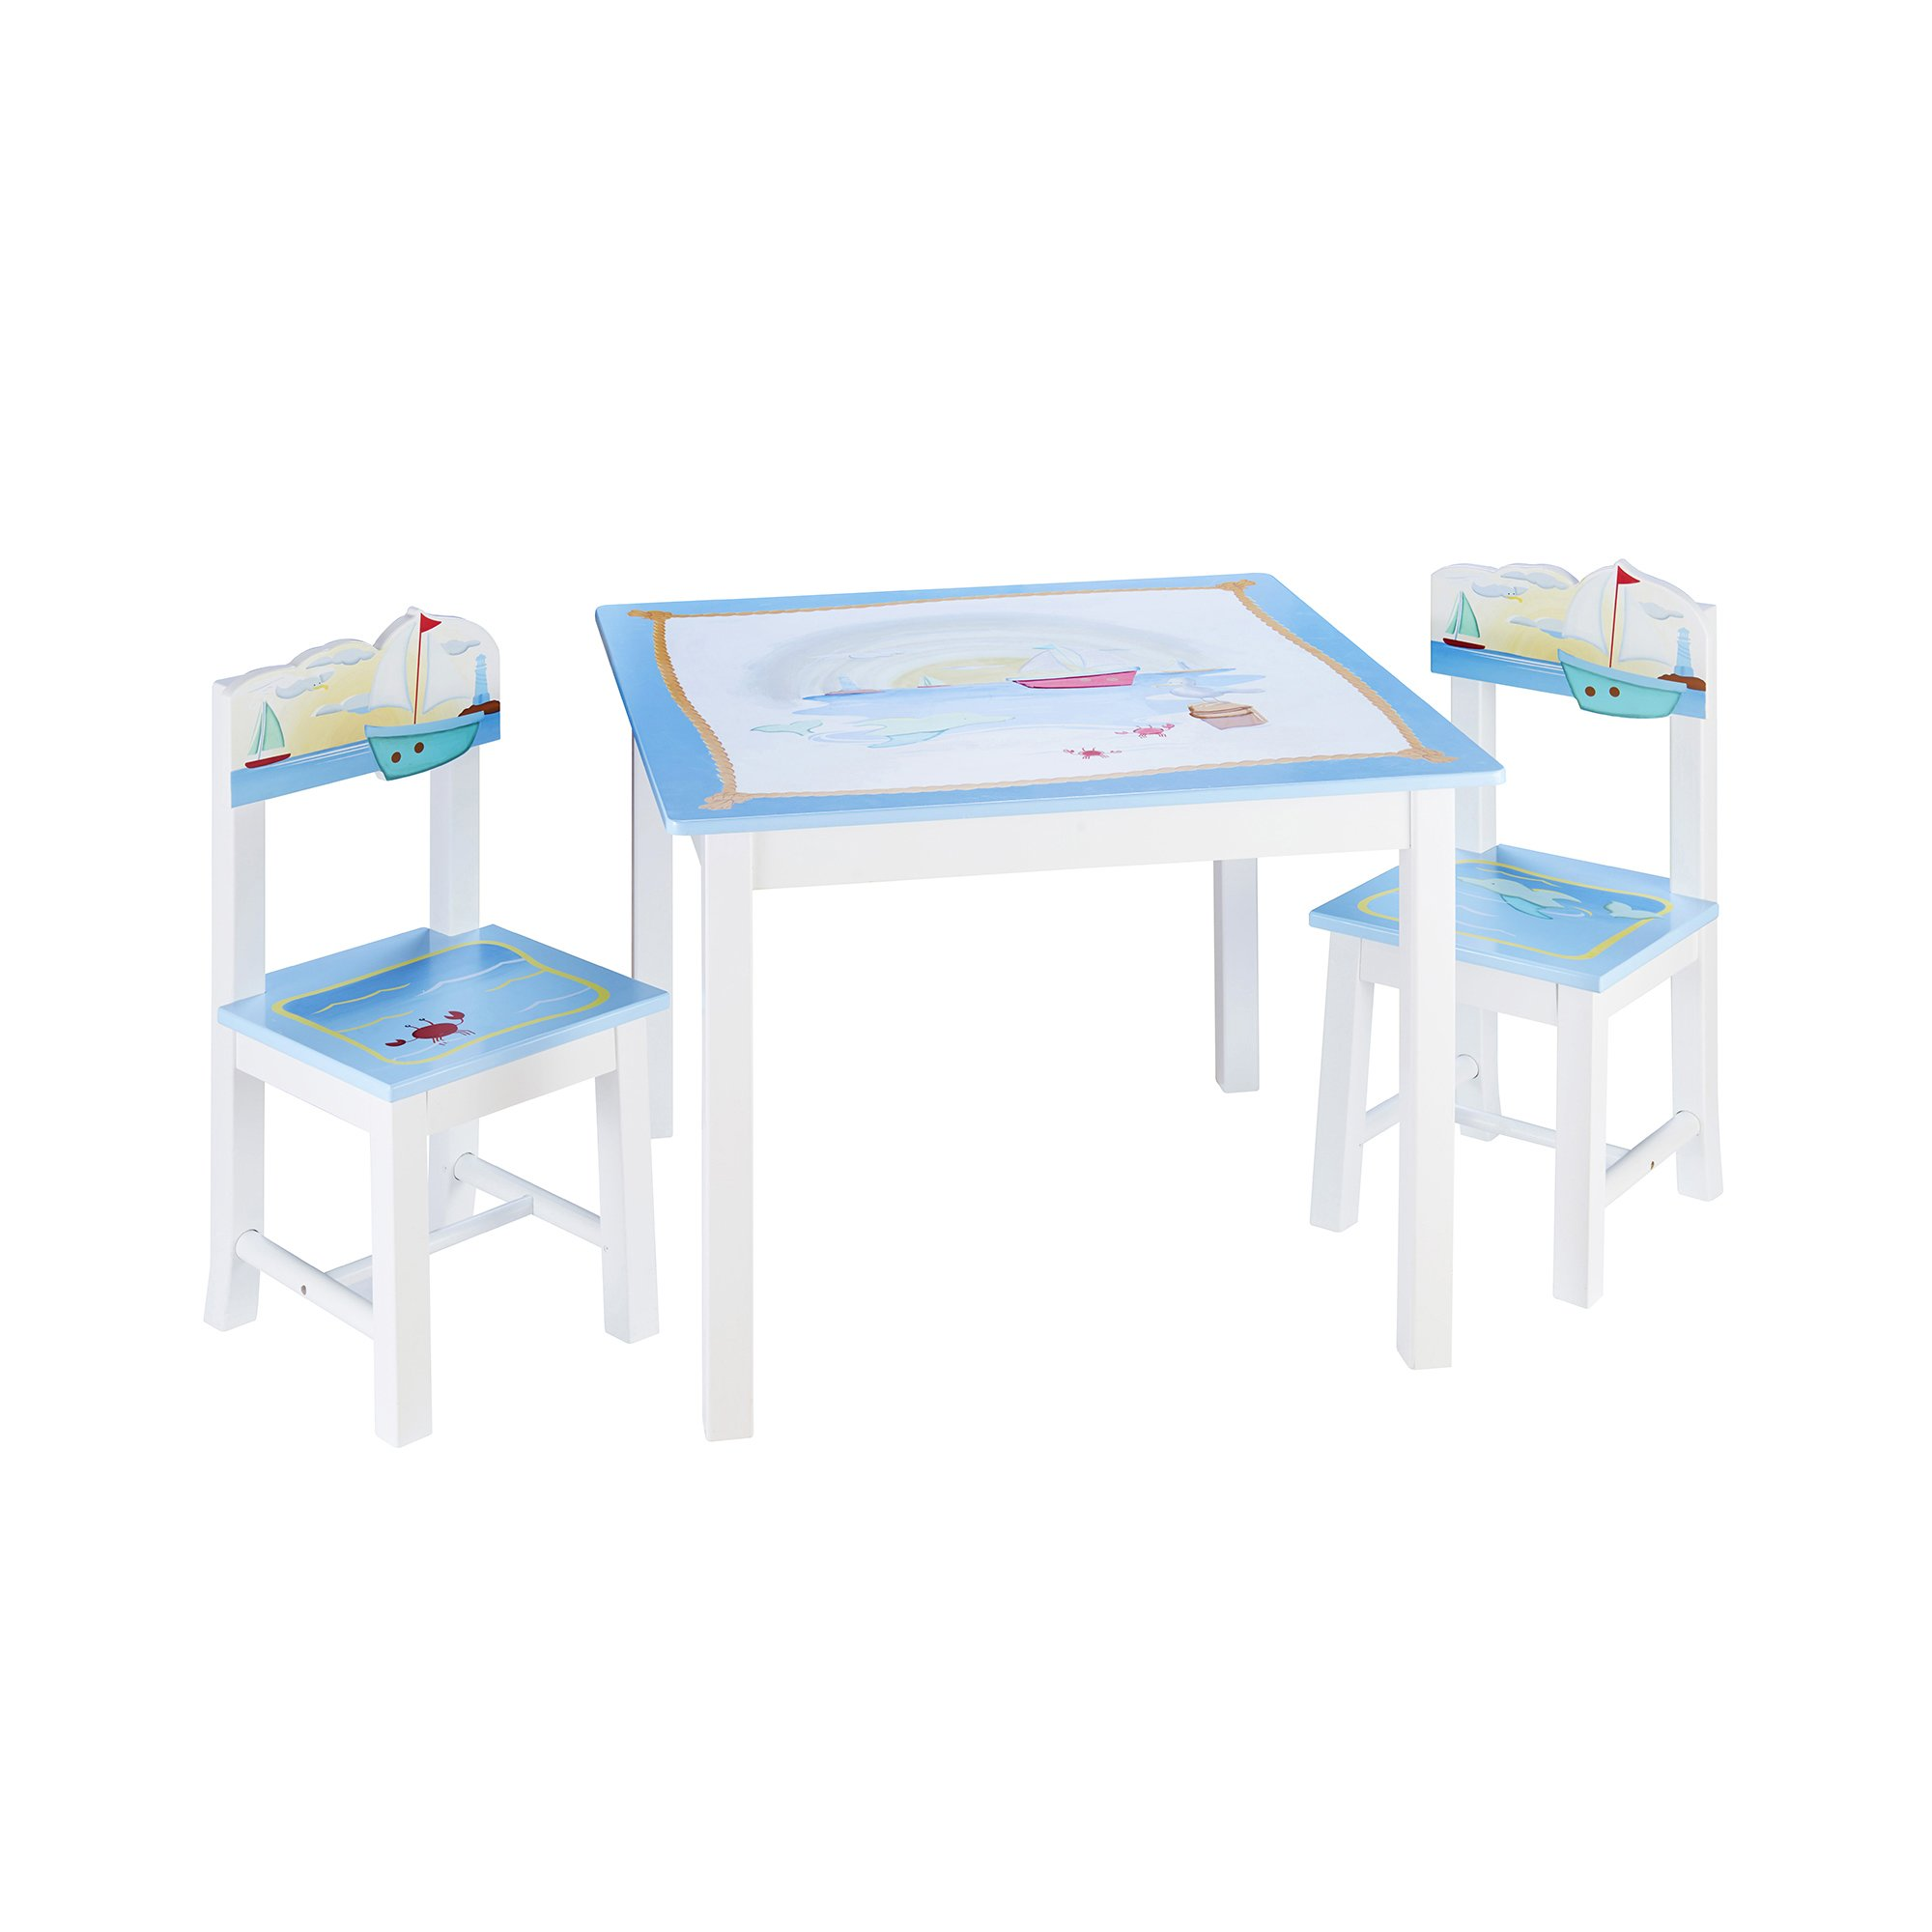 Guidecraft Wood Hand-painted Sailing Table & Chairs Set - Kids Study & Activity Table - Preschool Furniture